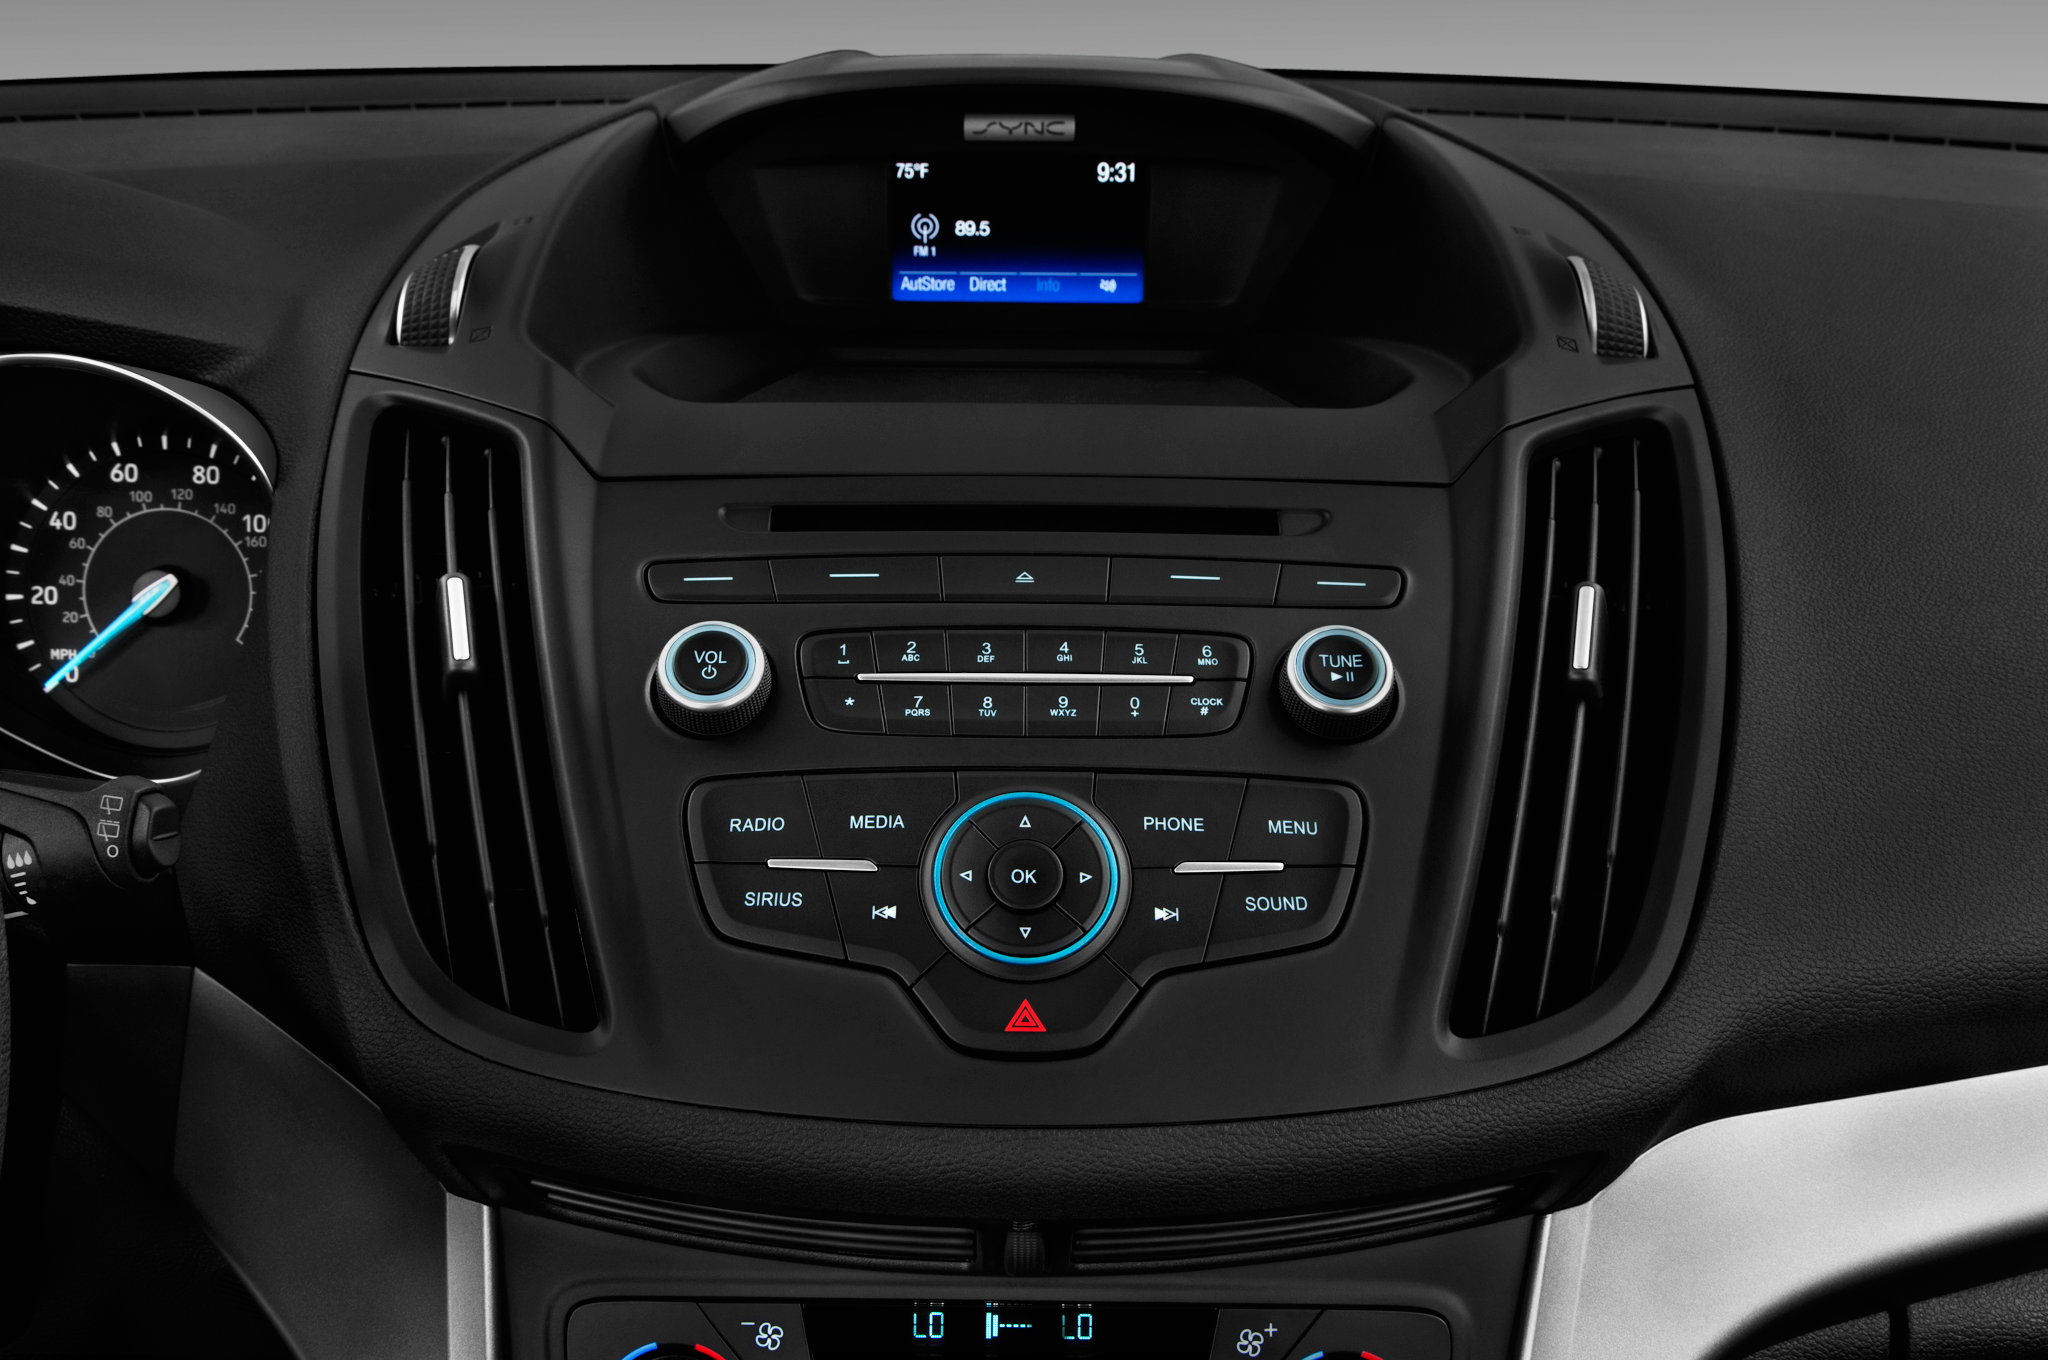 New Ford Sync Connect Smartphone App Launches on 2017 Ford Escape